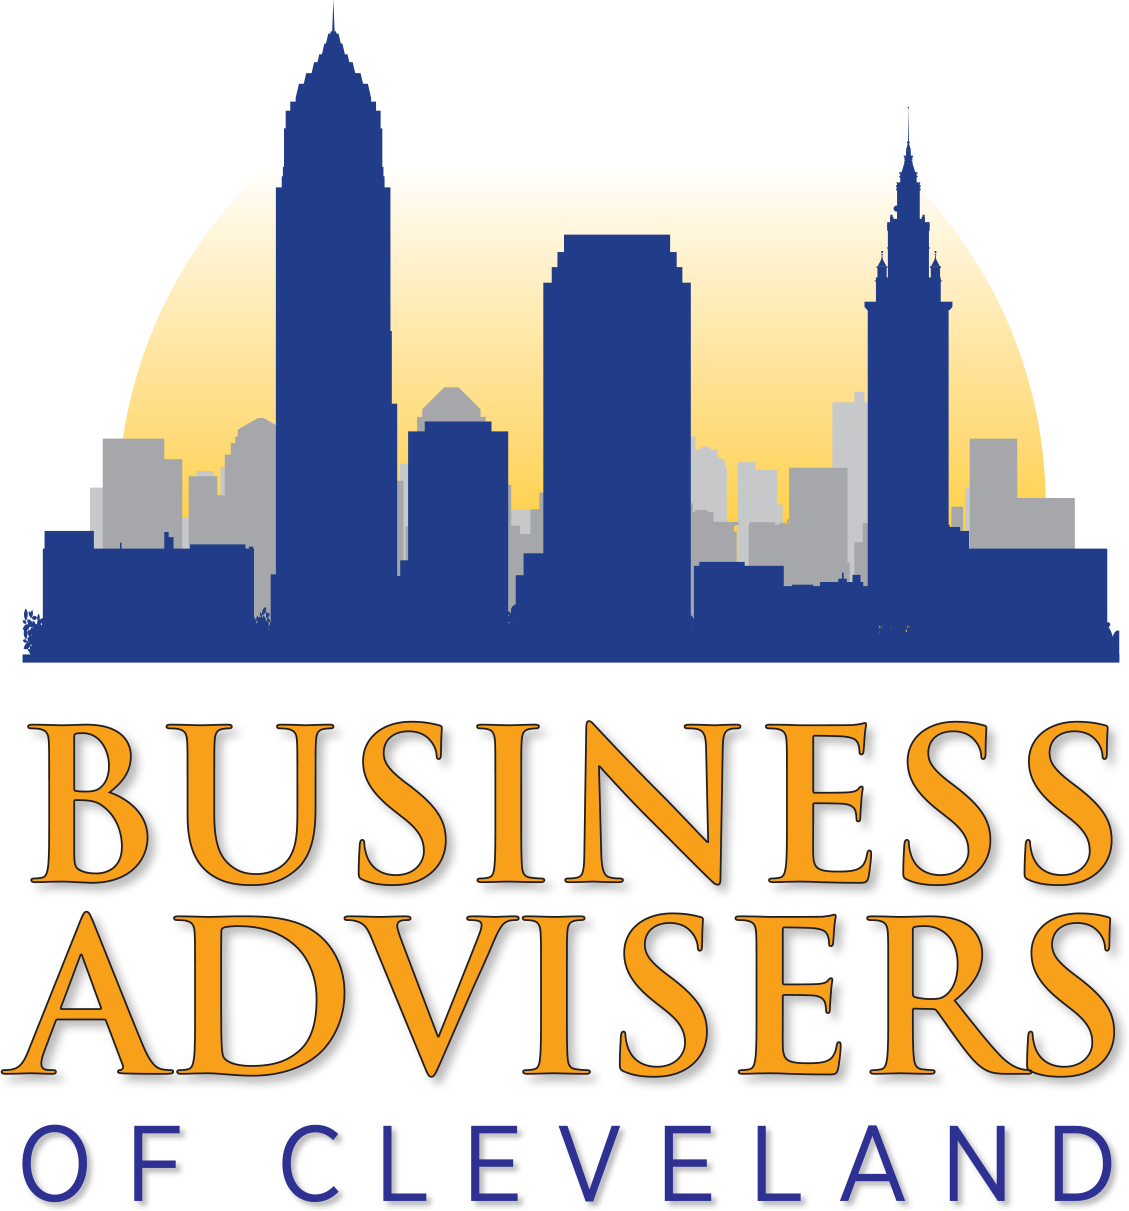 Business Advisers of Cleveland Retina Logo